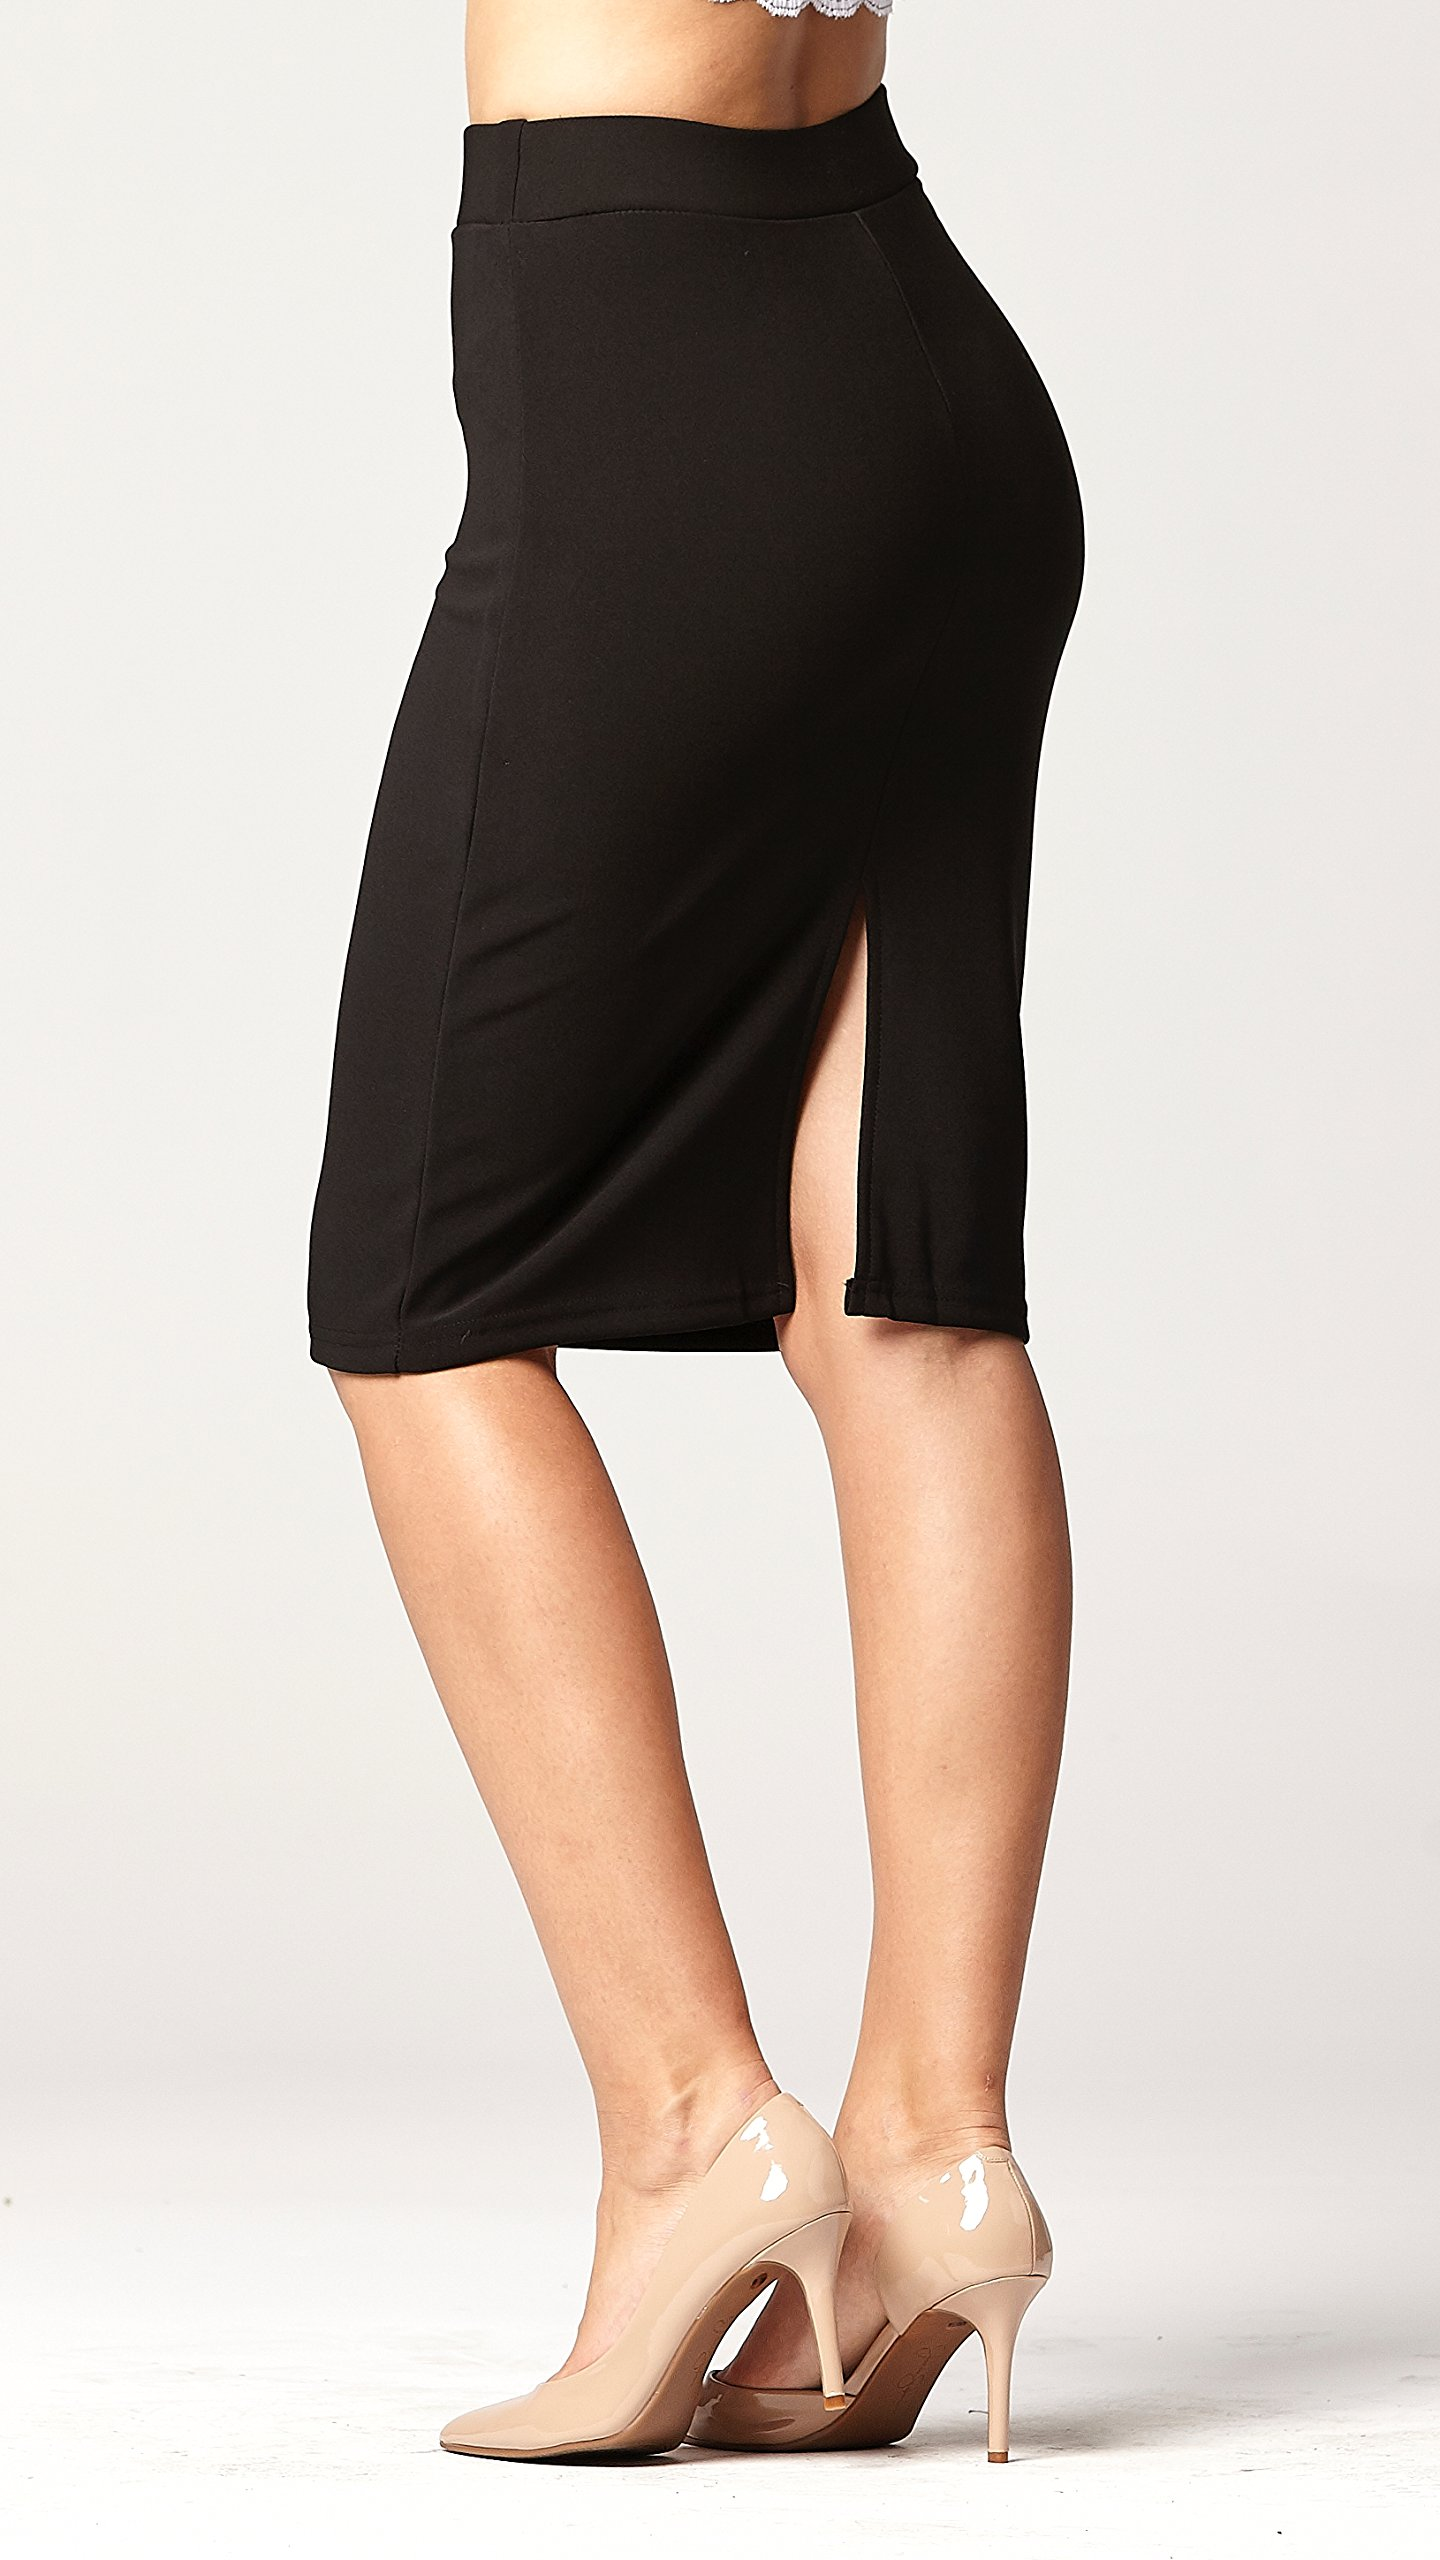 Conceited Premium Stretch Pencil Skirt - 10 Colors - by (Small, Black) by Conceited (Image #4)